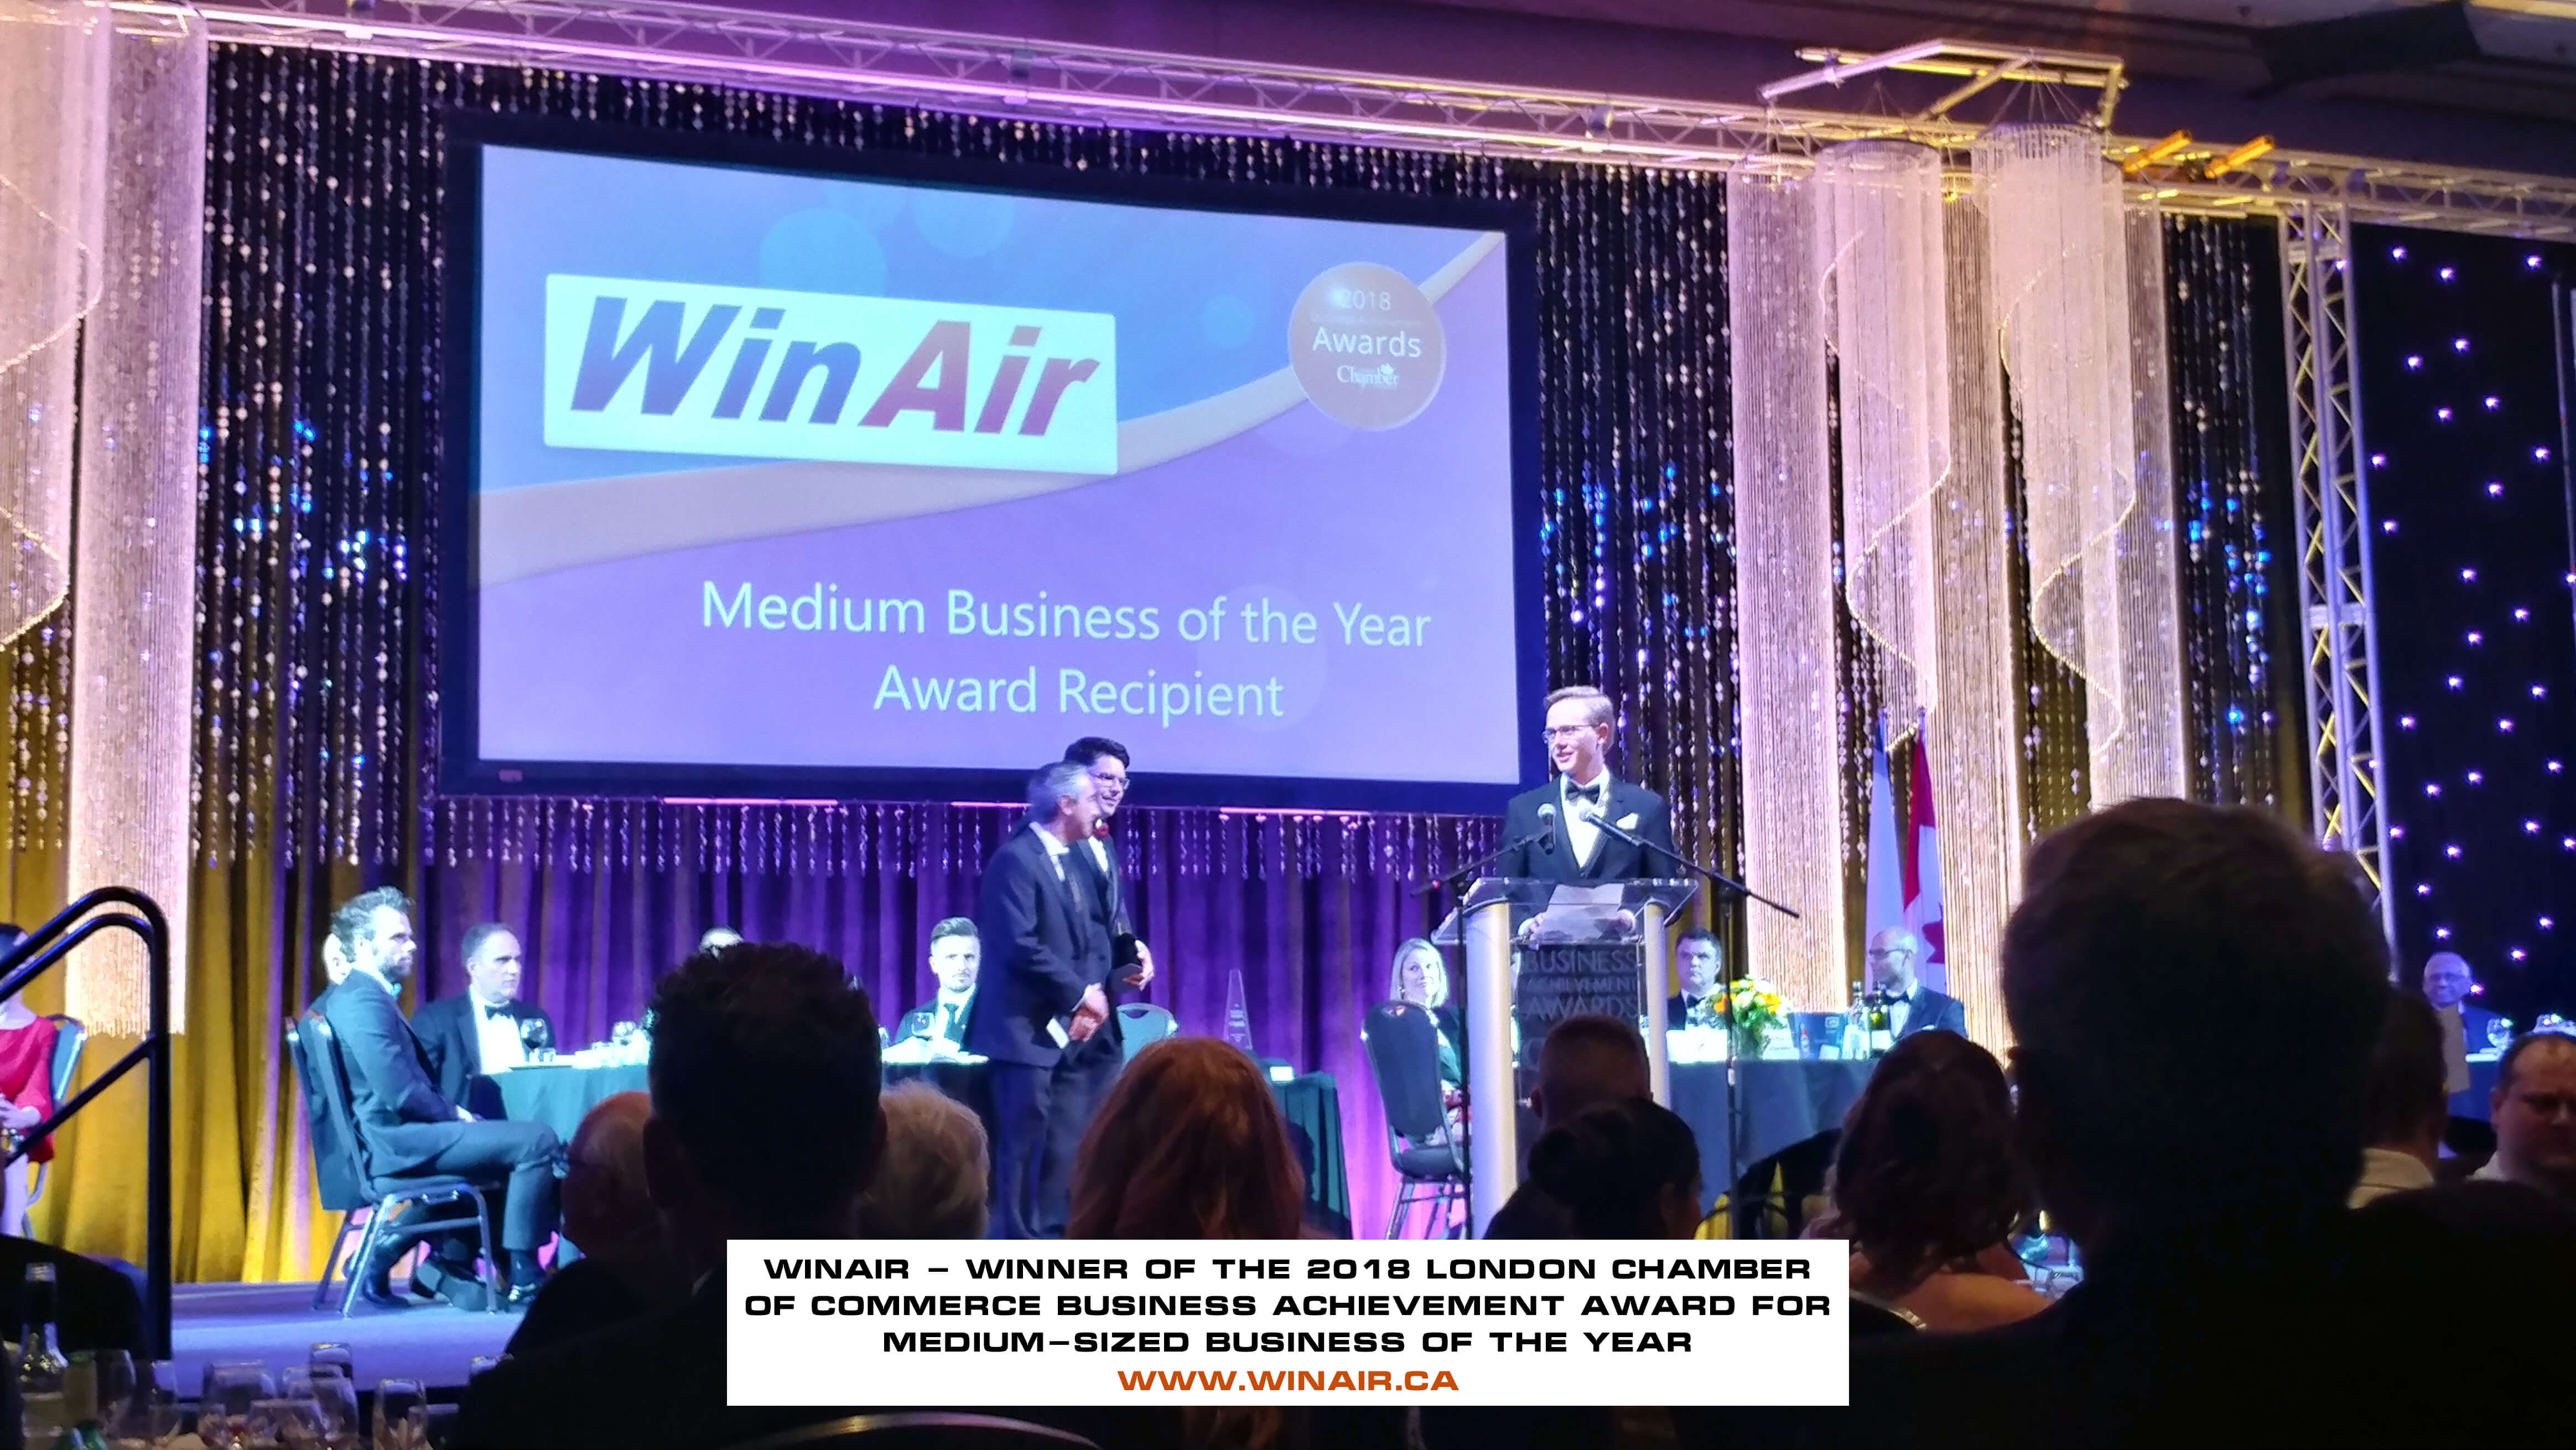 WinAir - Winner of the 2018 London Chamber of Commerce Business Achievement Award for medium-sized Business of the Year